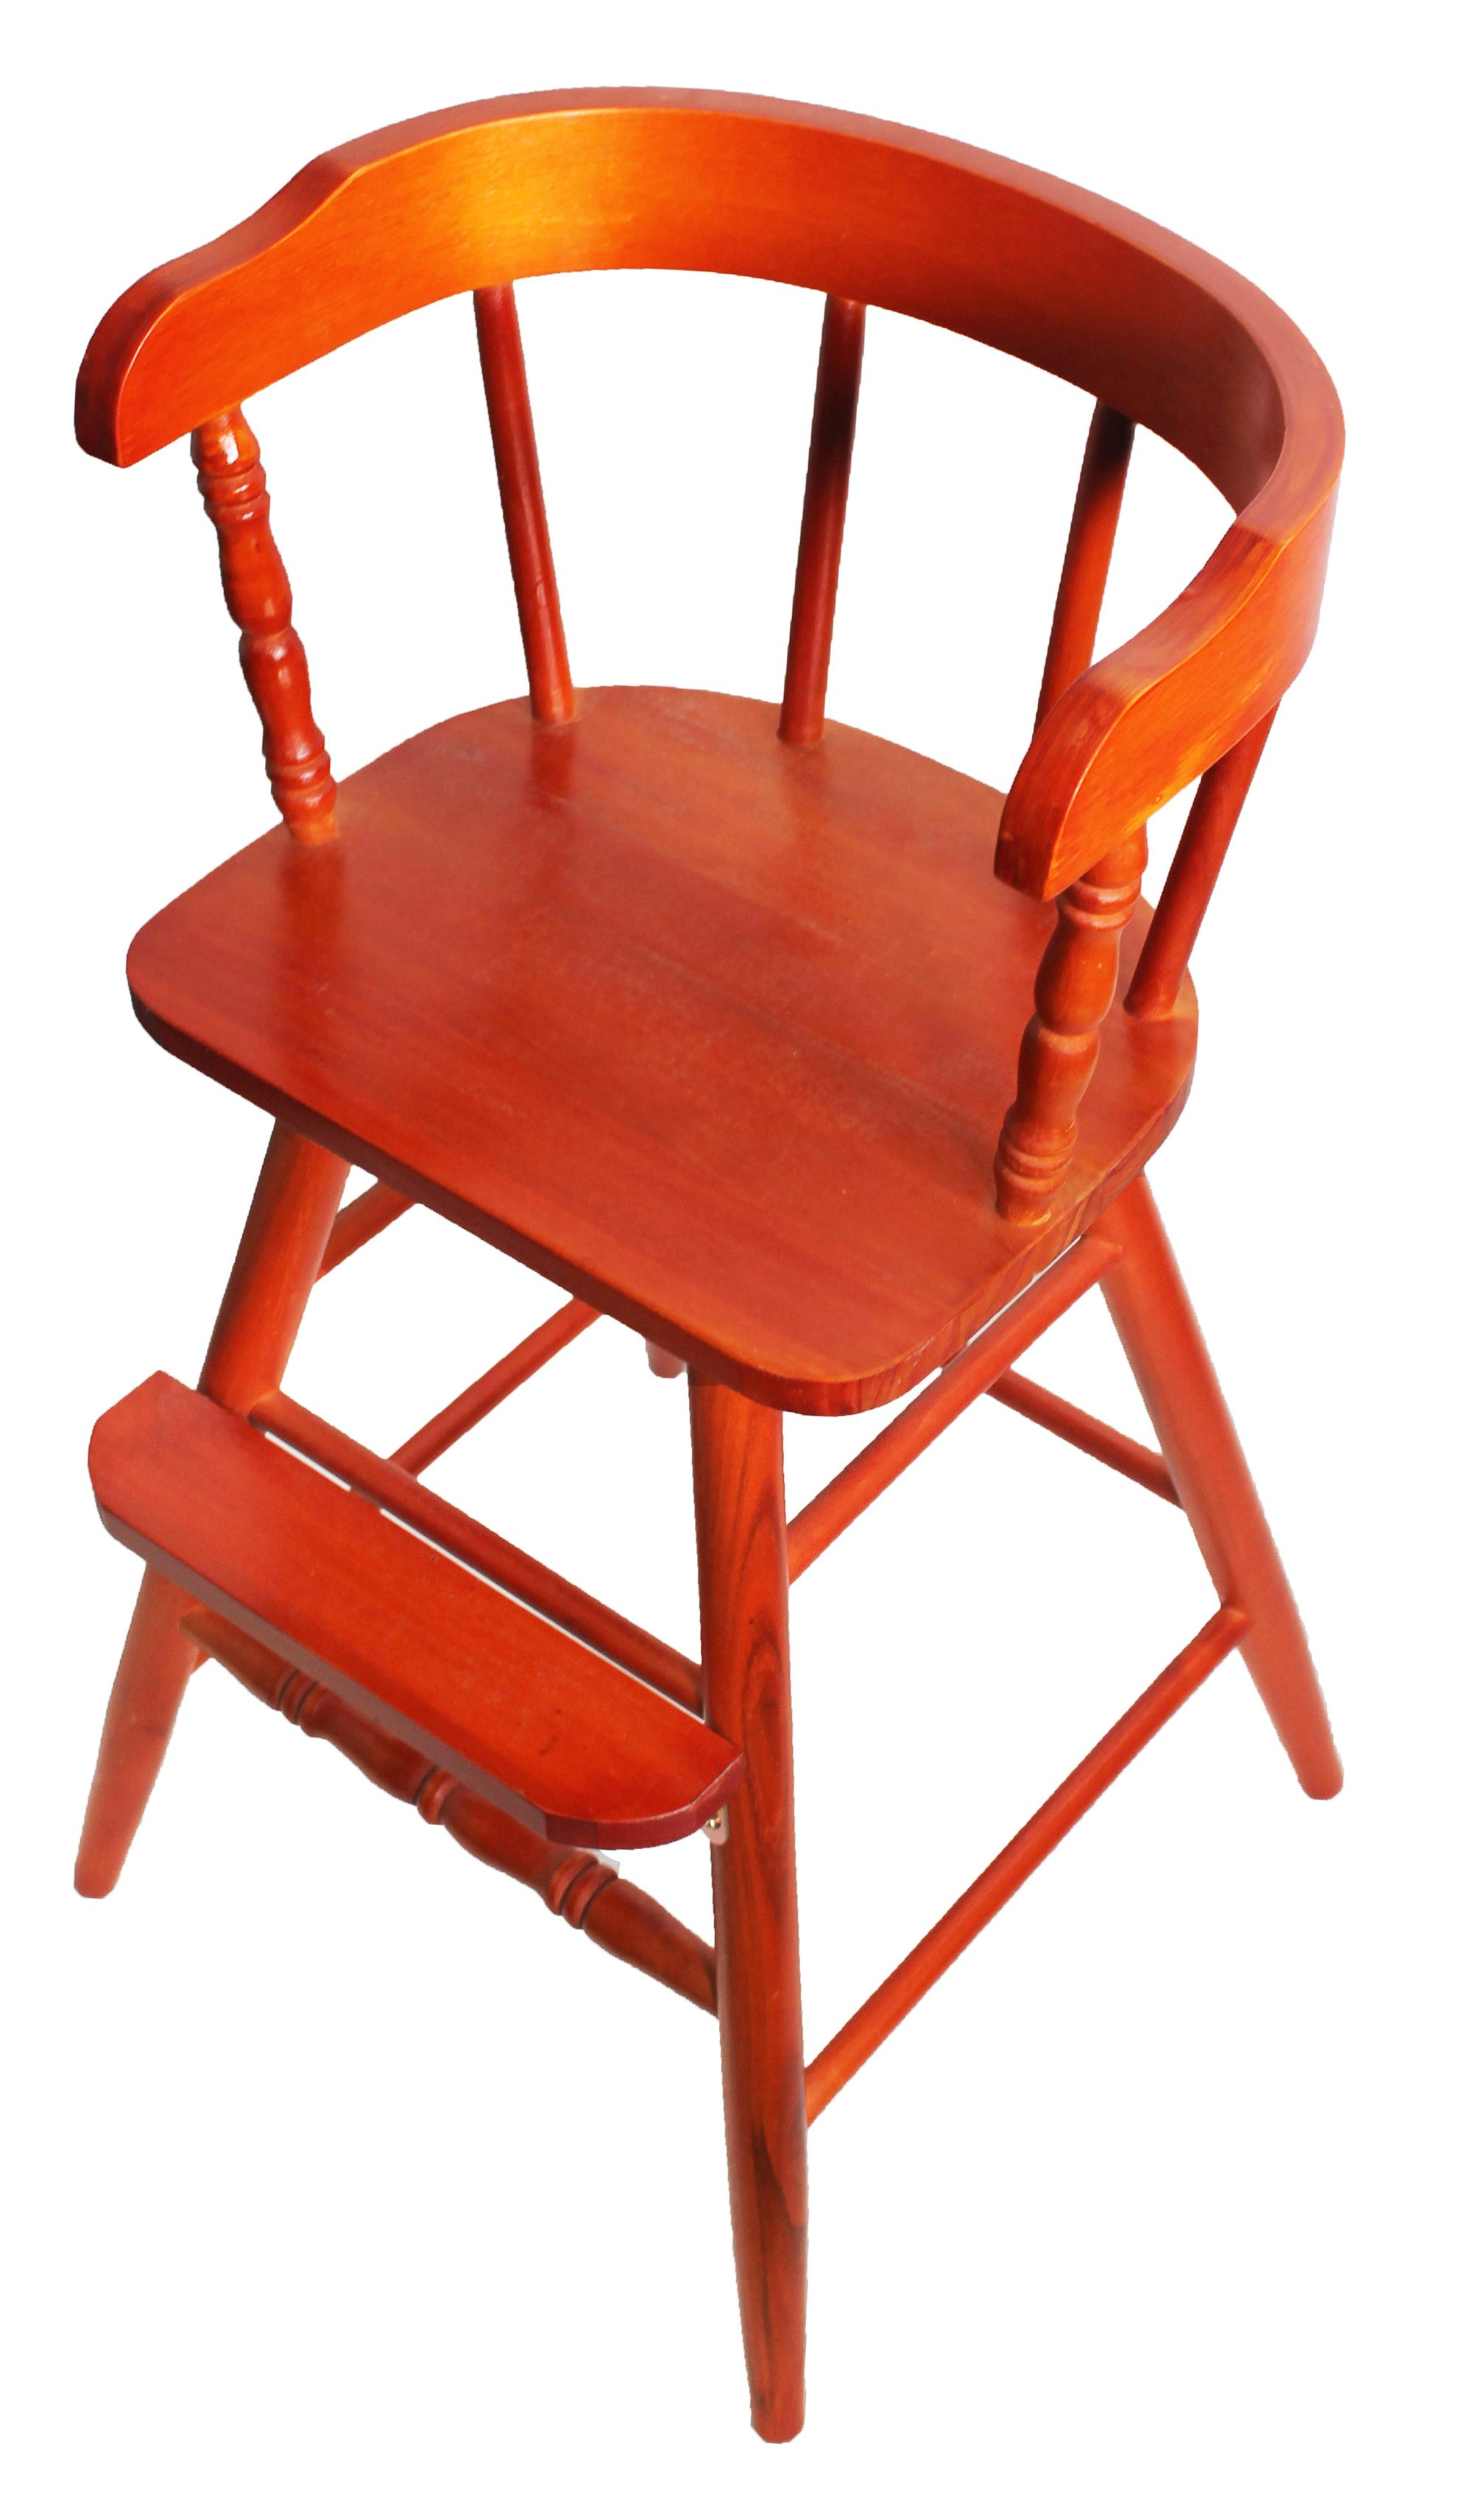 Sargent's Sons Youth Chair - Flamed Mahogany Finish